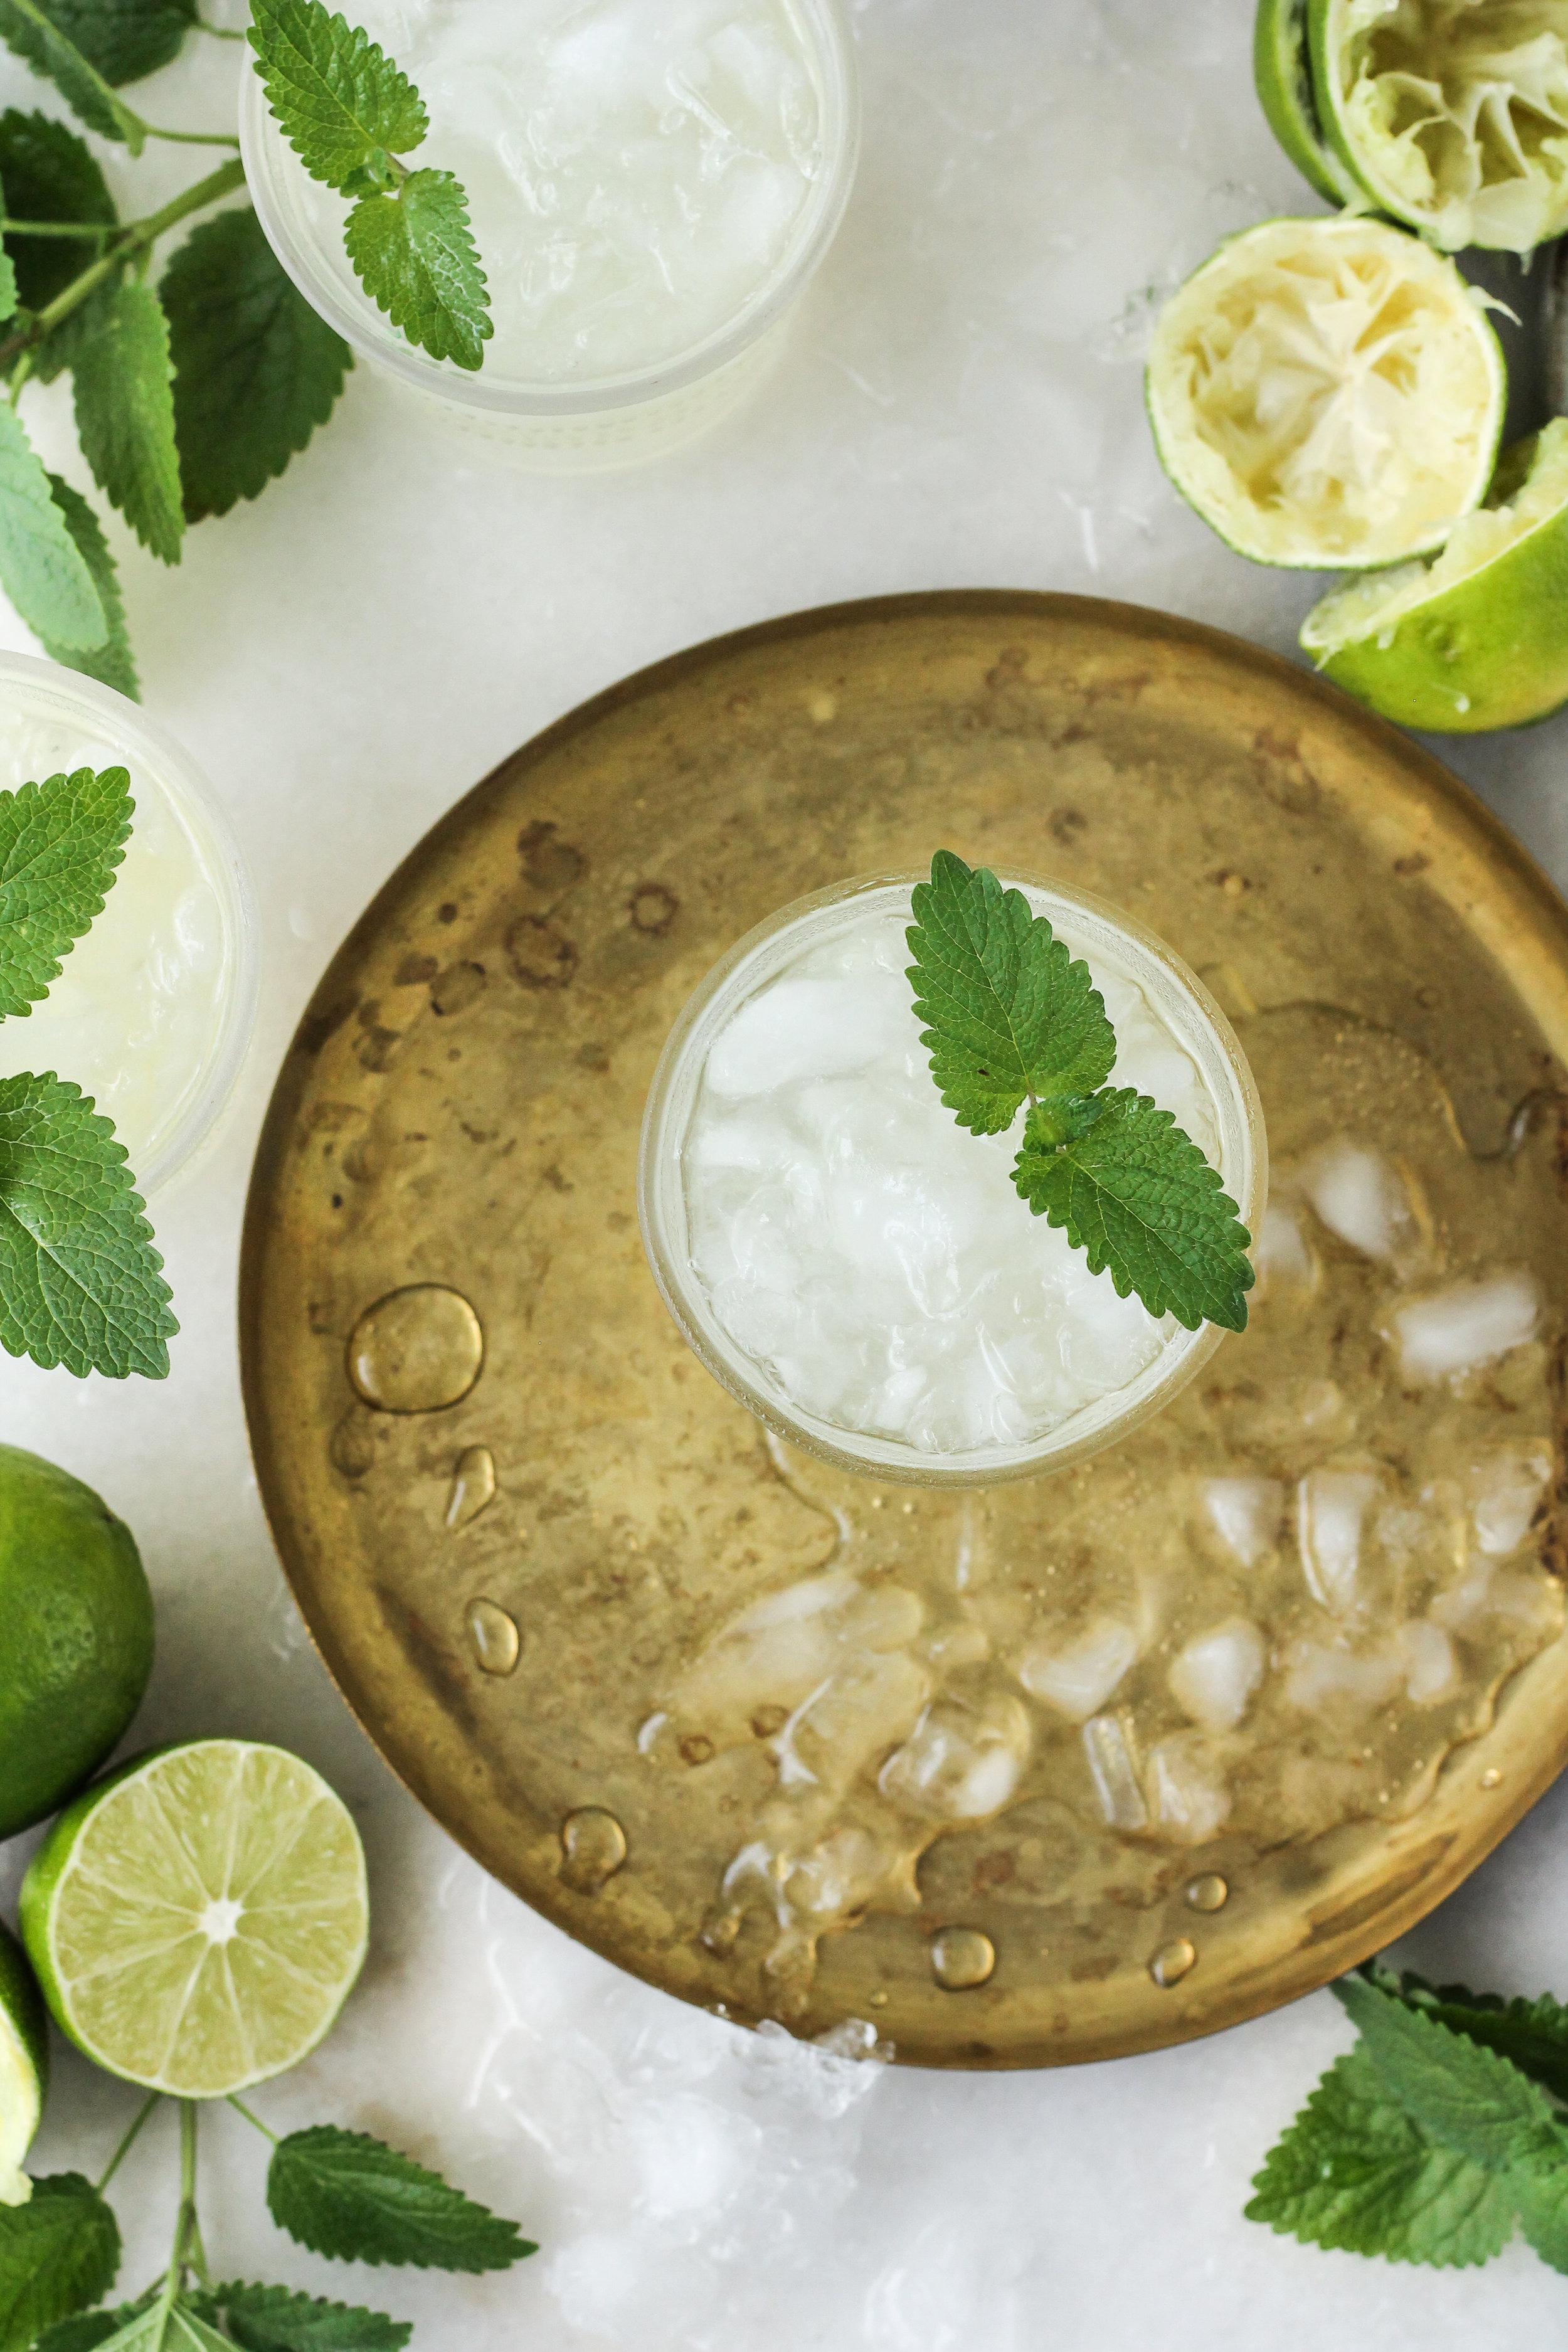 Lemon Balm Limeade is the simplest and most delicious way to refresh this summer! [ WWW.PEDANTICFOODIE.COM ]